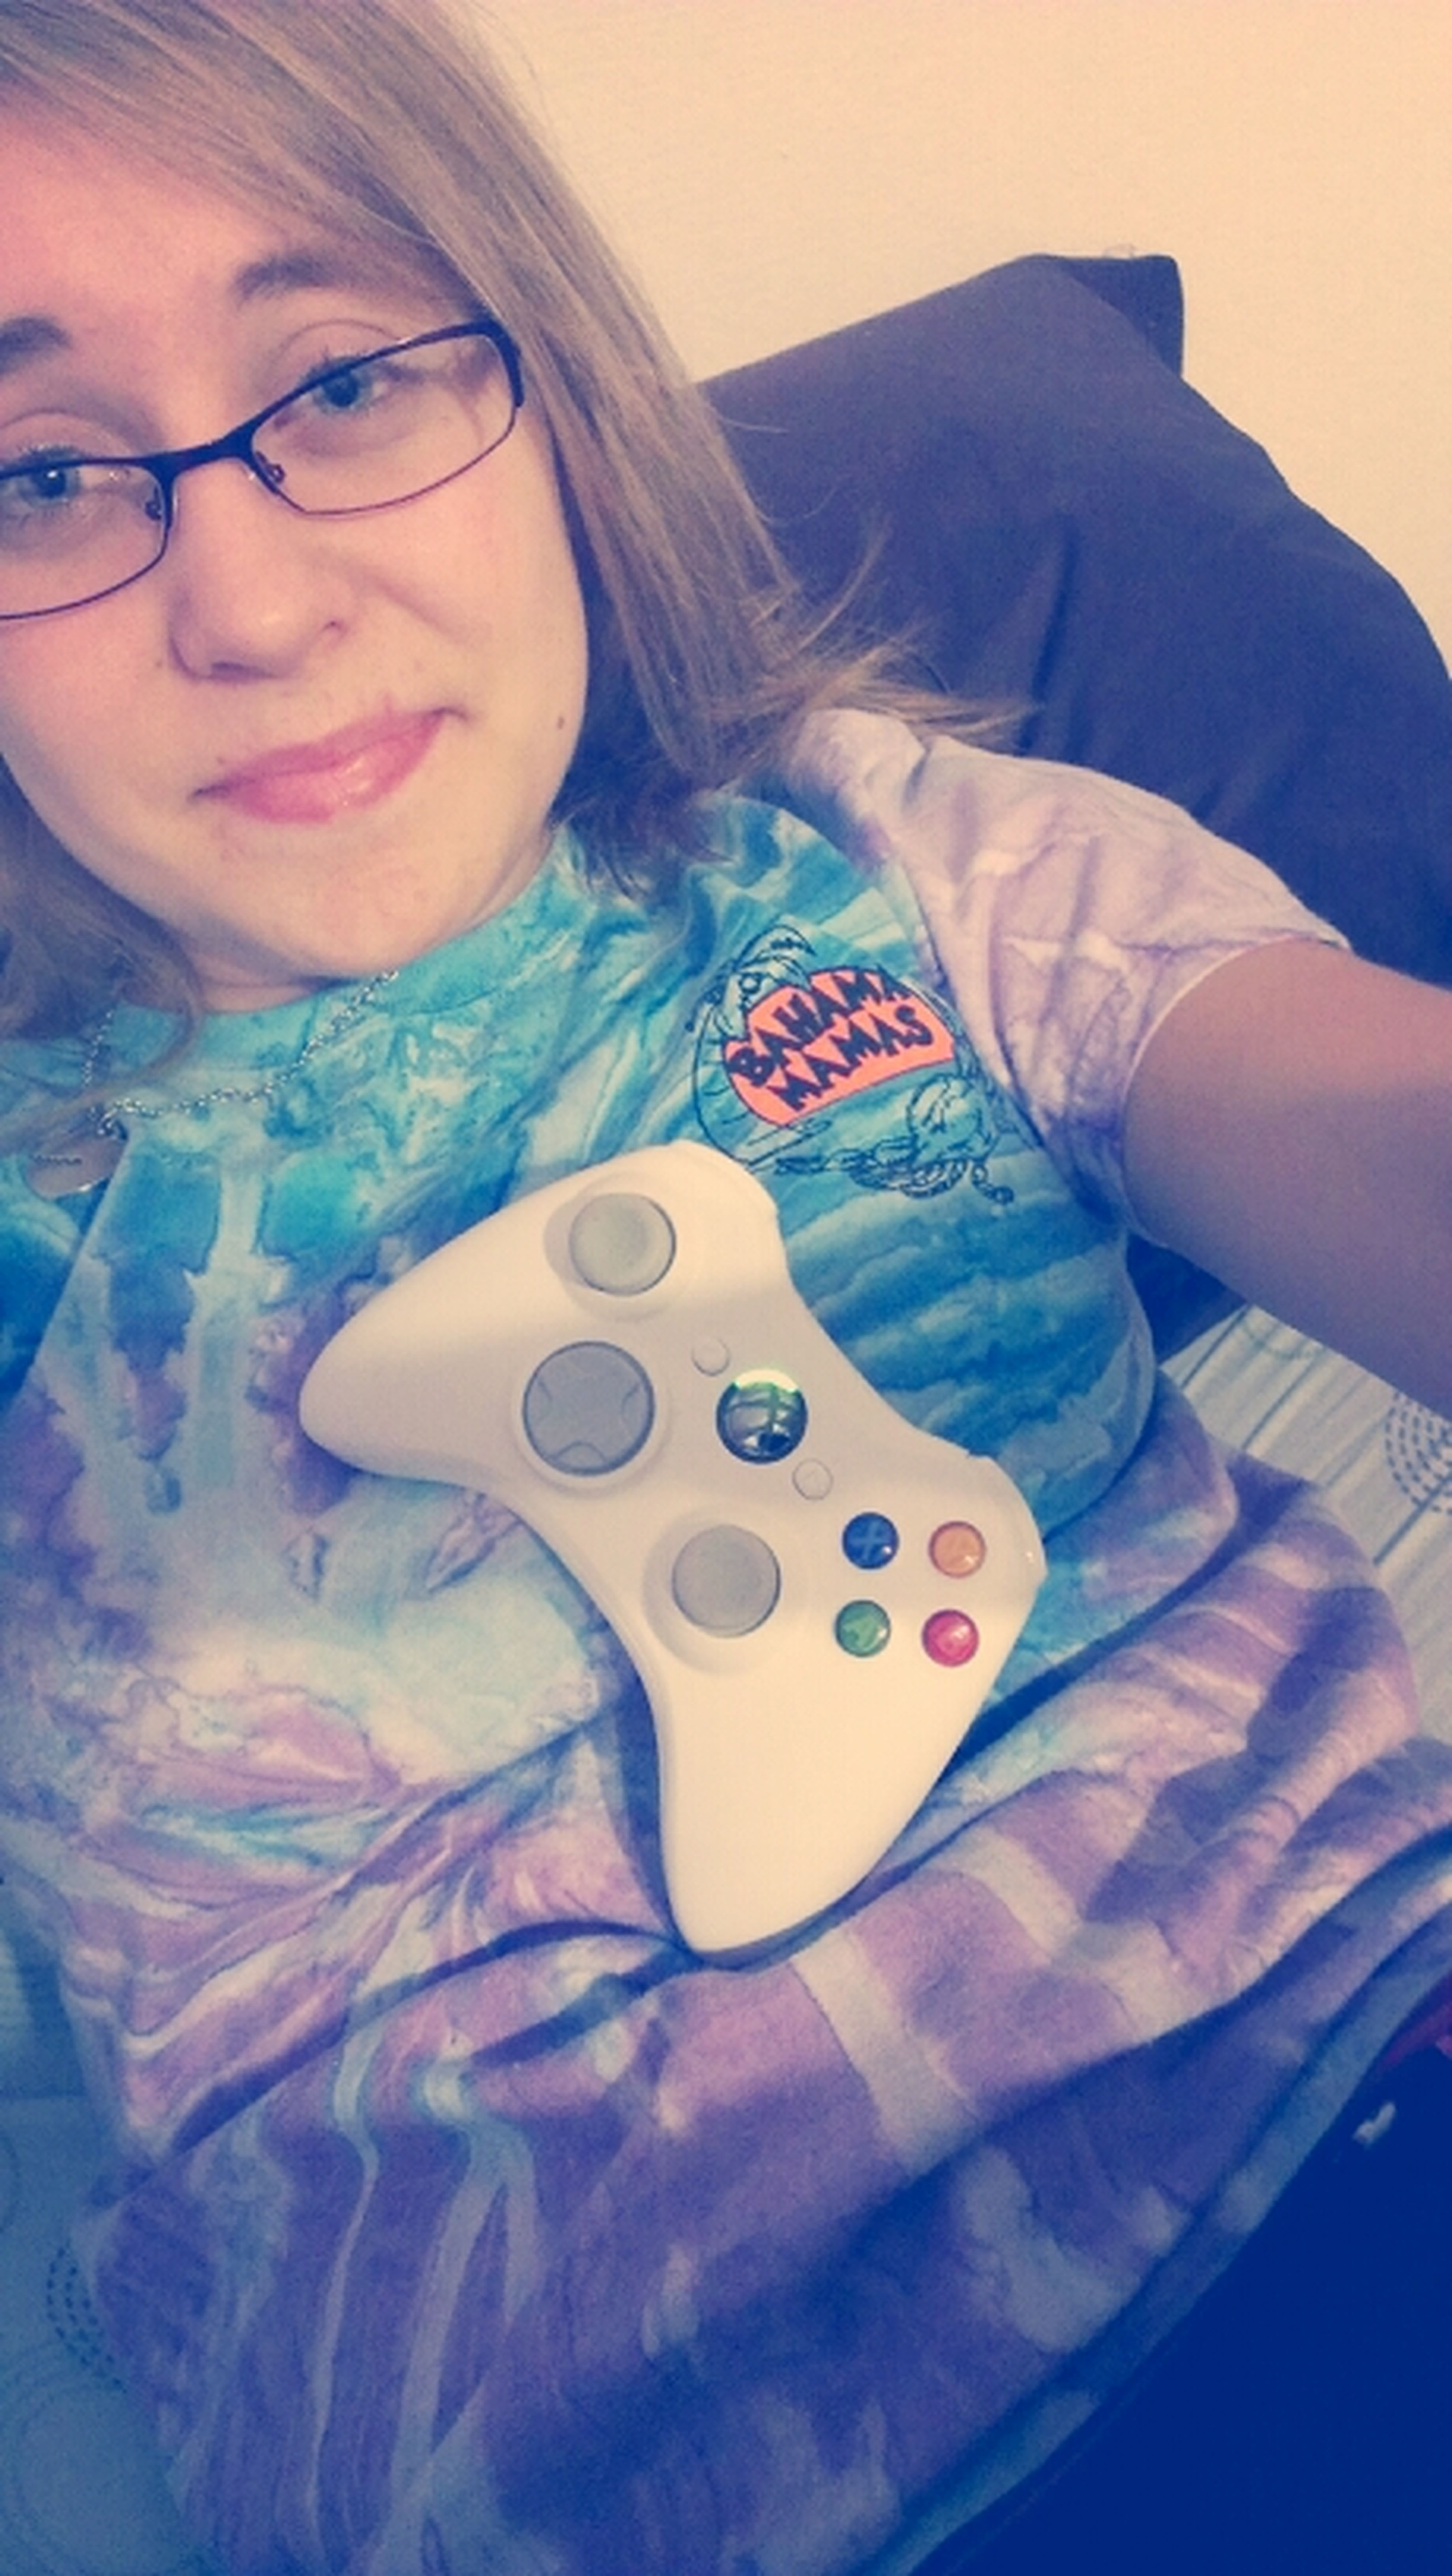 the only time I wear glasses is when I play Xbox ;) ;)